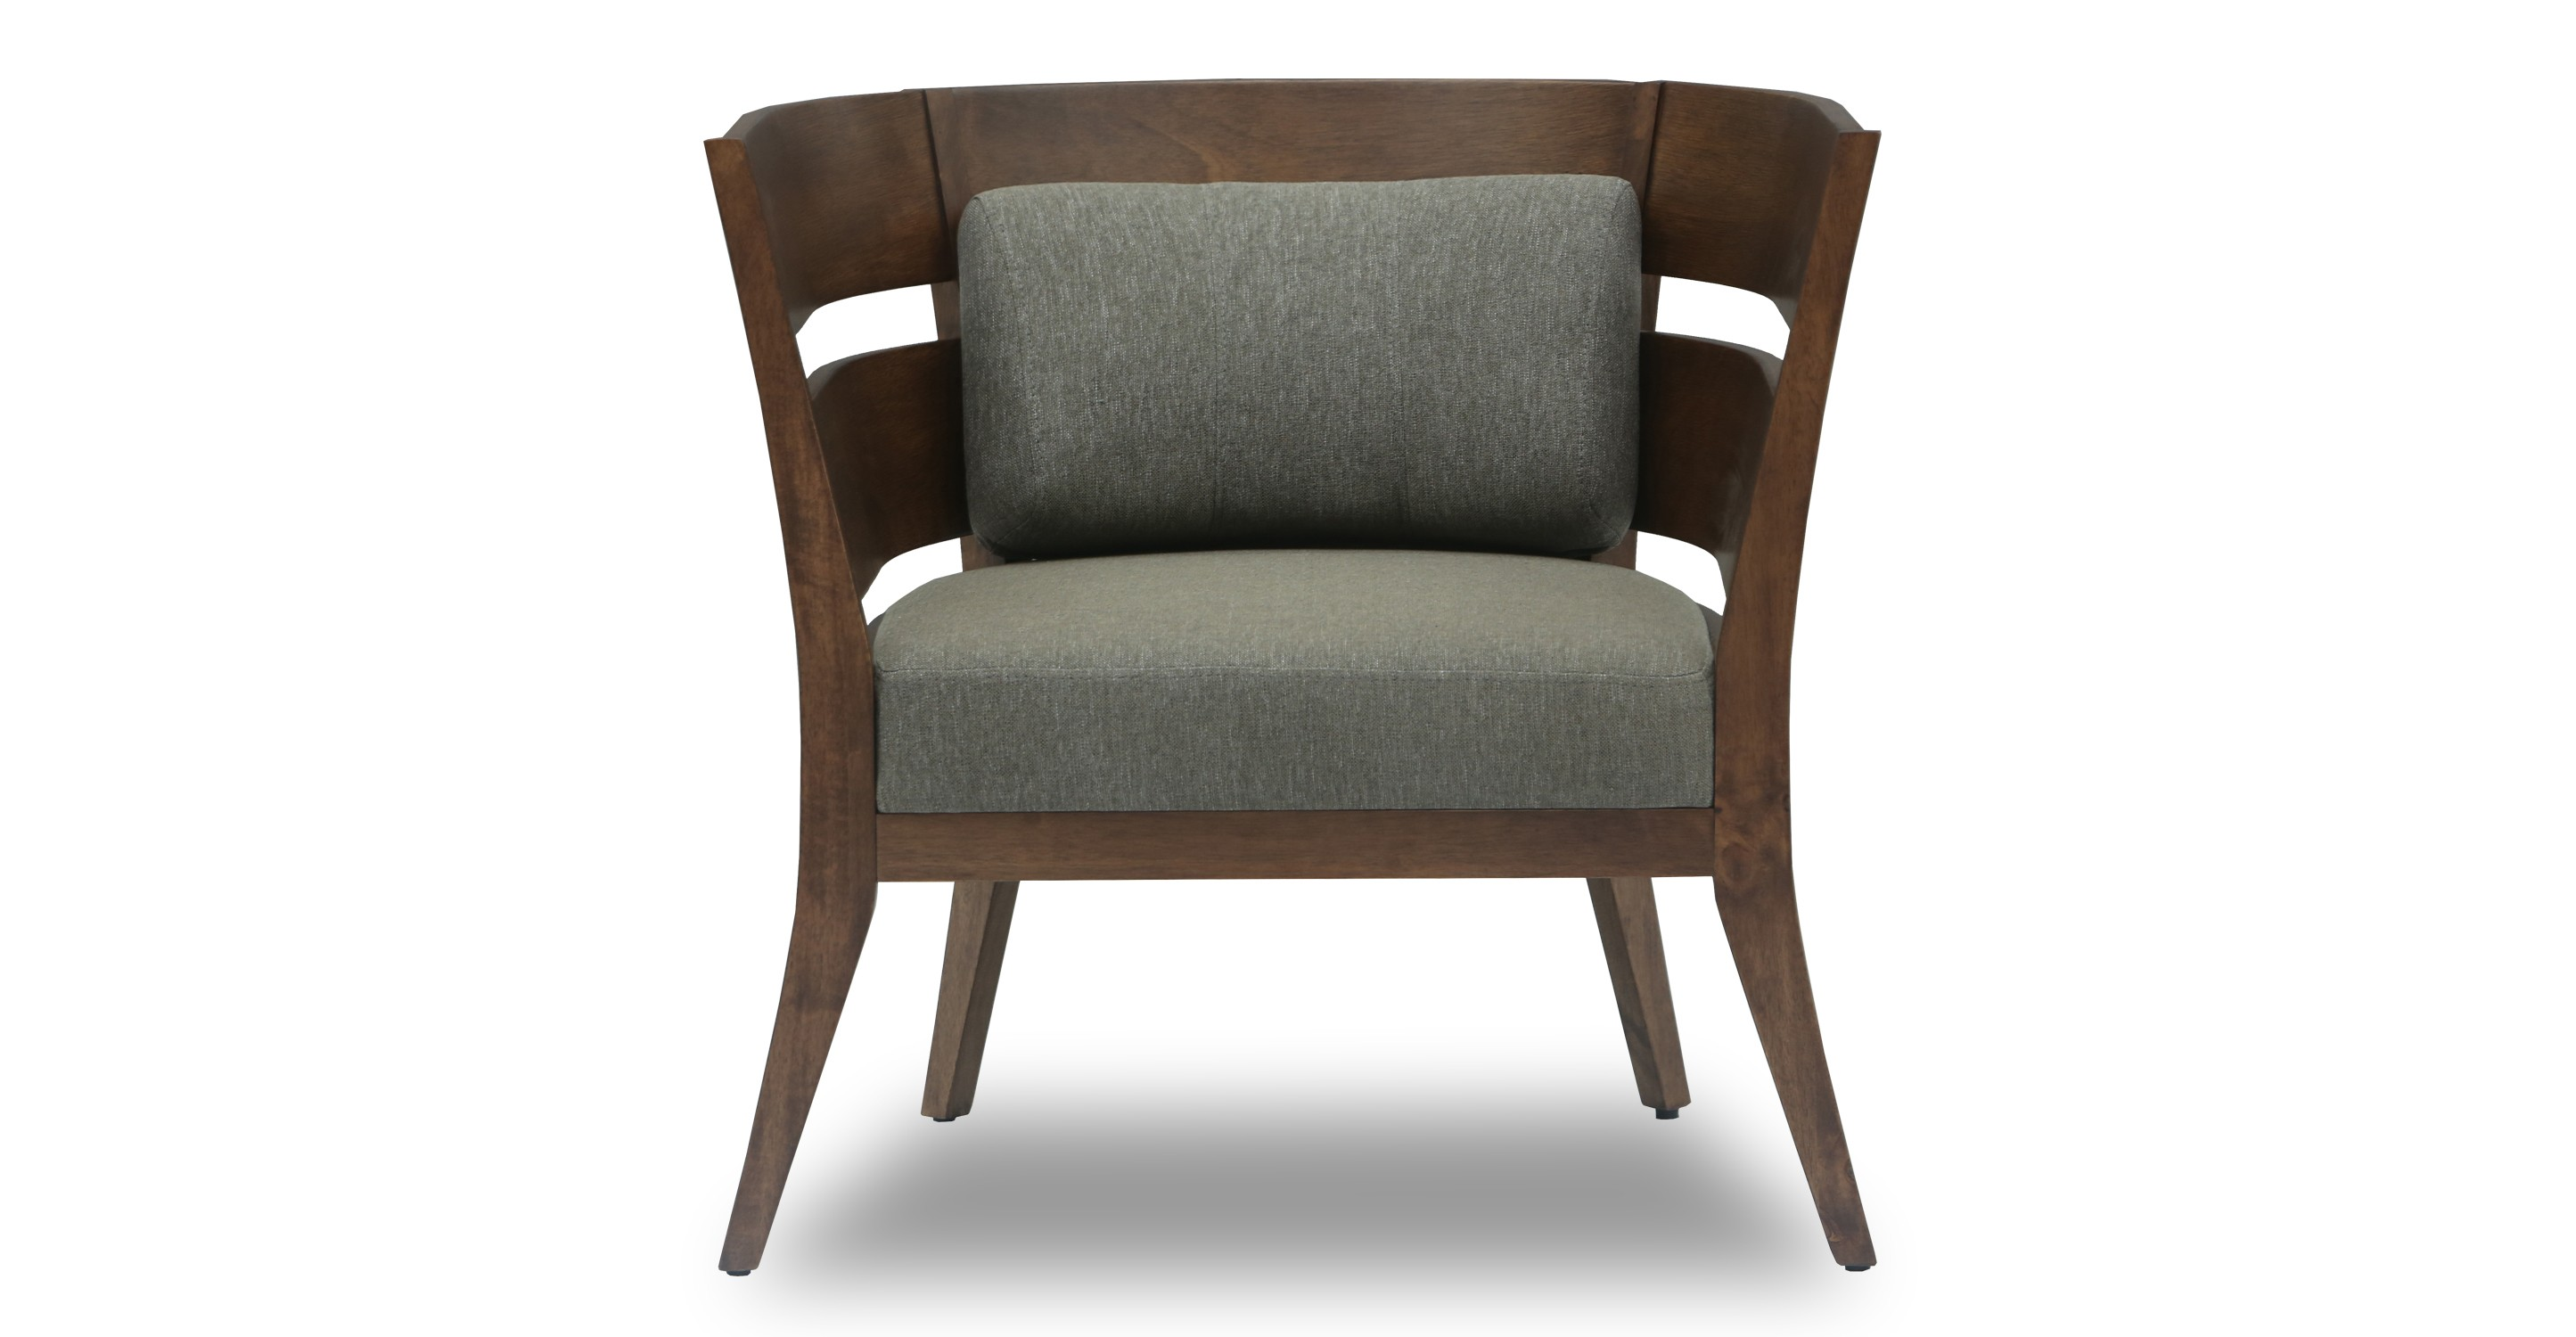 Mier cocoa lounge chair lounge chairs article modern mid century and scandinavian furniture - Scandinavian chair ...